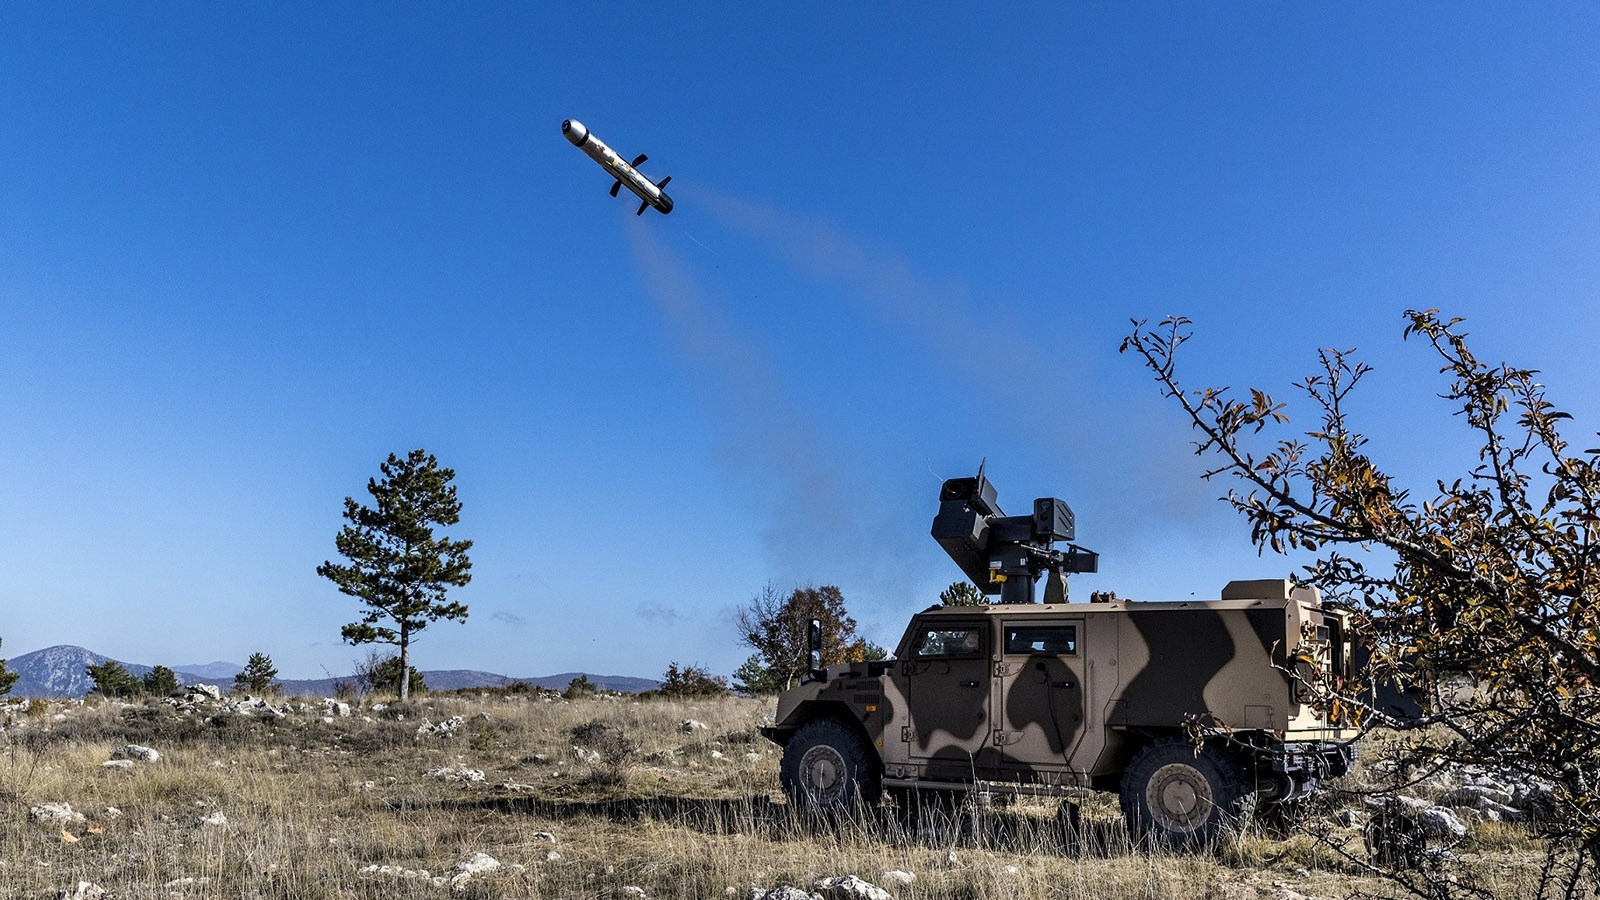 MBDA Conducts First Firing of MMP Anti-tank Guided Missile from Vehicle-Mounted IMPACT Turret